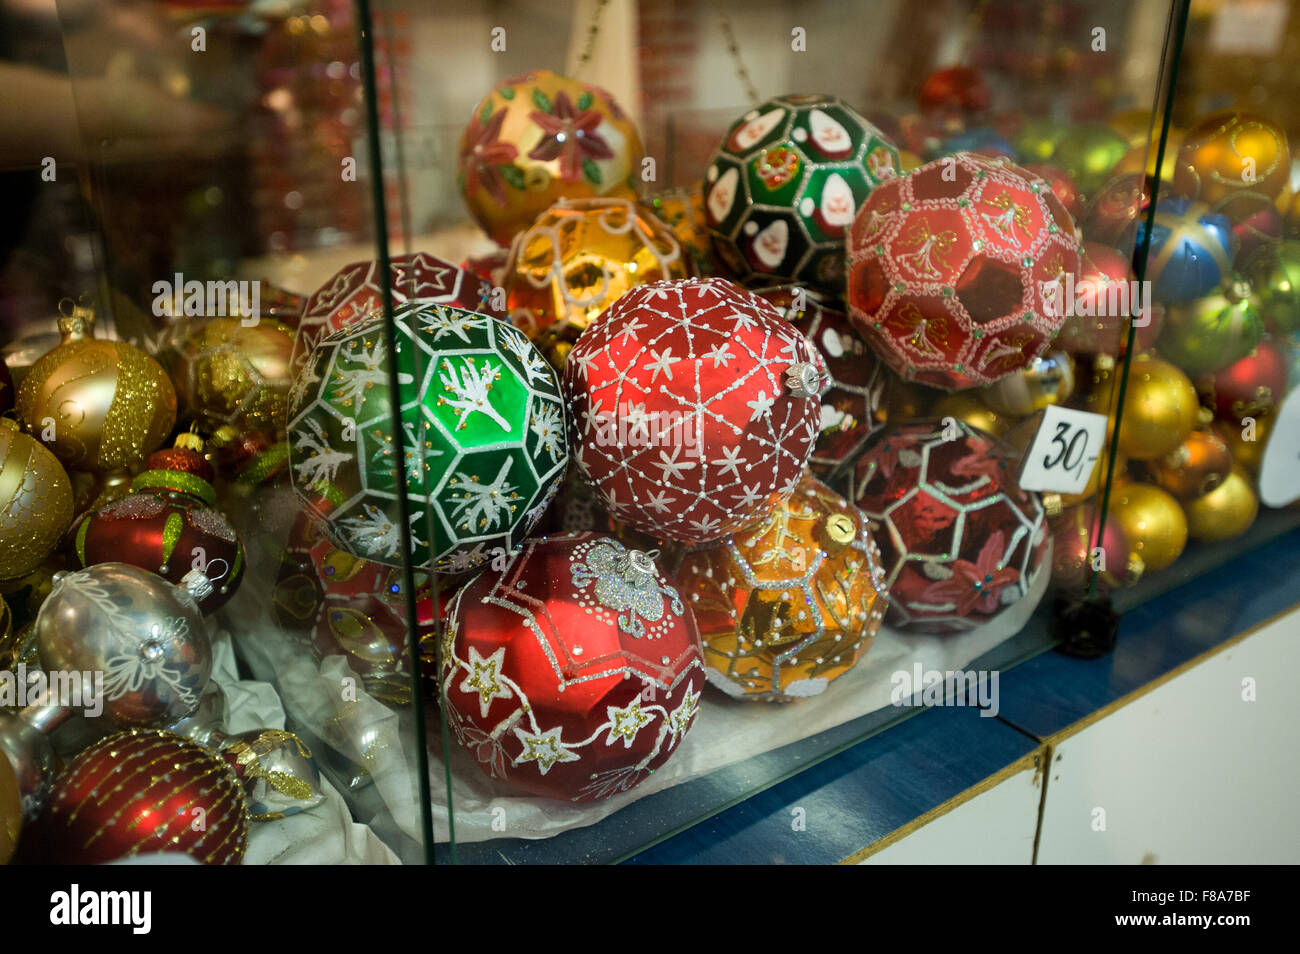 Piotrkow Trybunalski, Poland. 7th December, 2015. Christmas balls displayed for sale at 'Szkło-Decor' (Glass - Stock Image